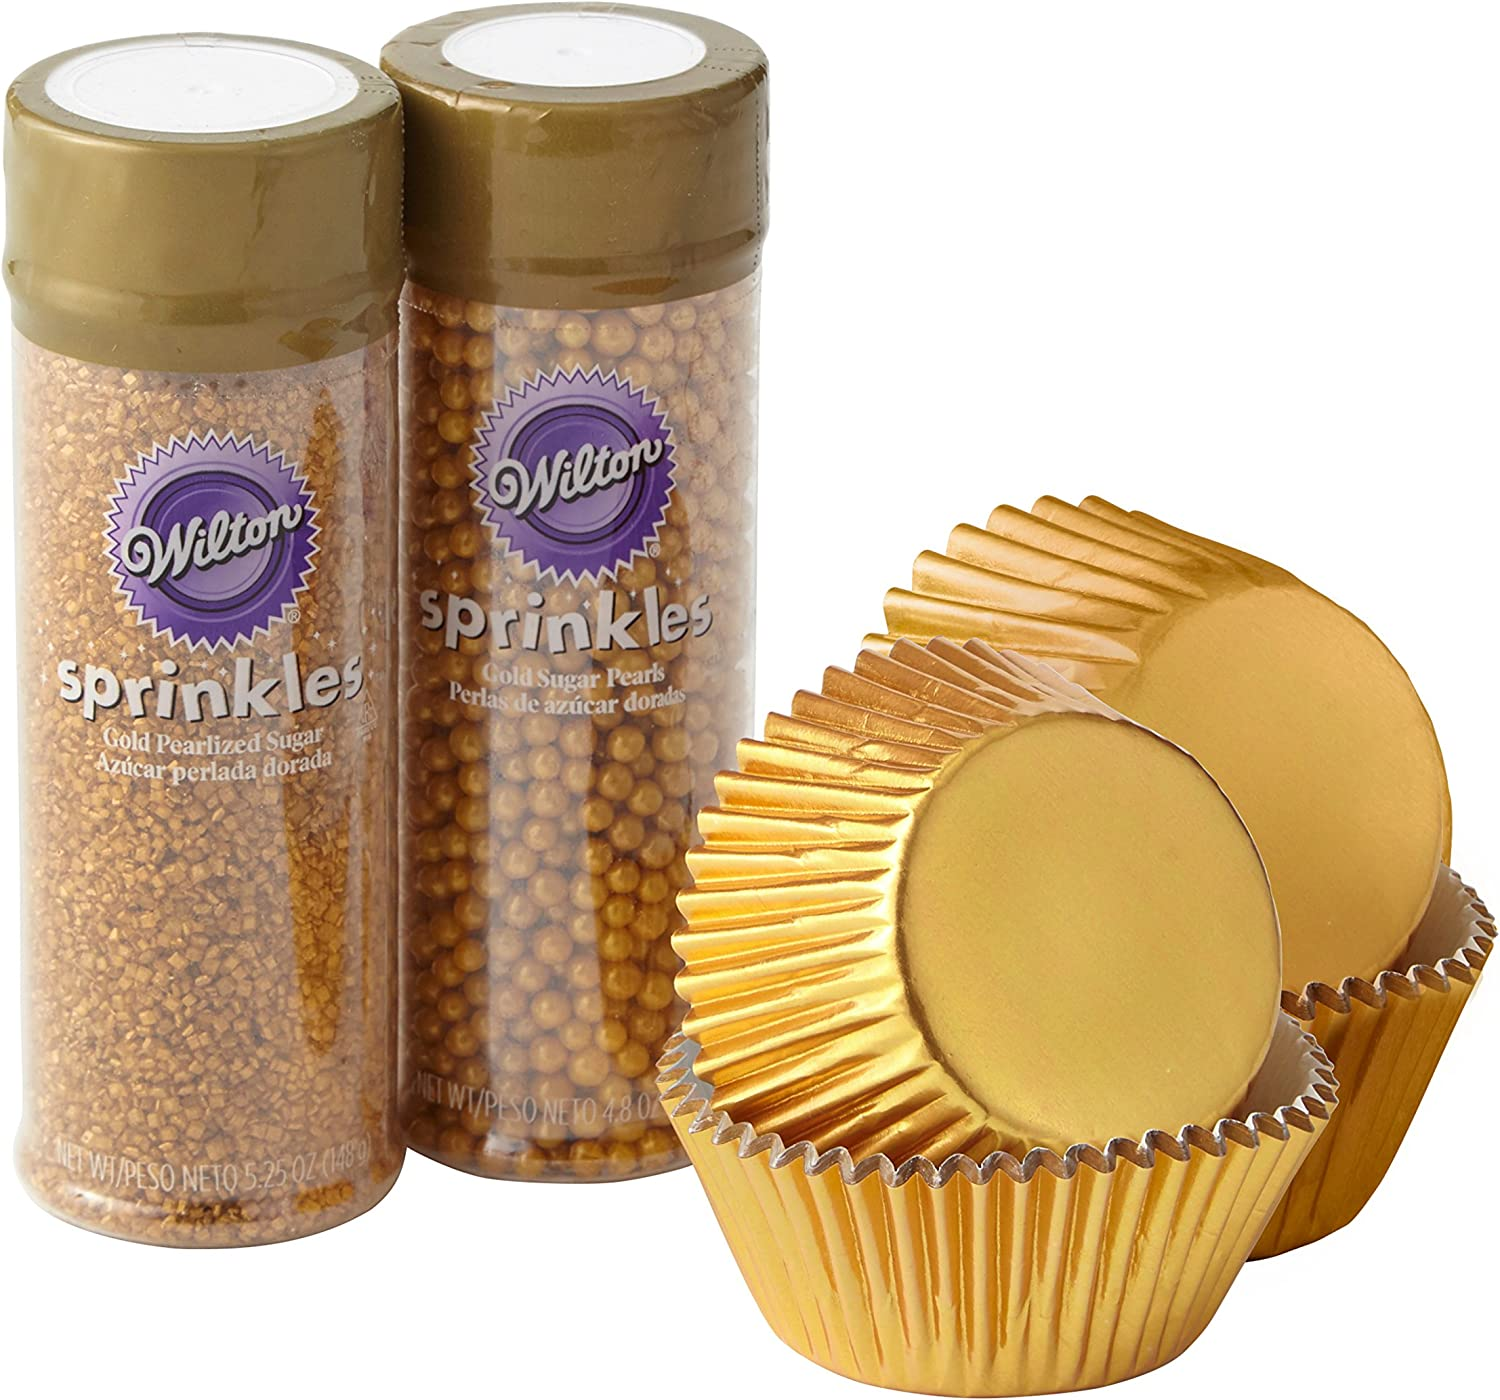 Wilton Gold Cupcake Decorating Kit, 4-Piece - Gold Baking Cups and Sprinkles